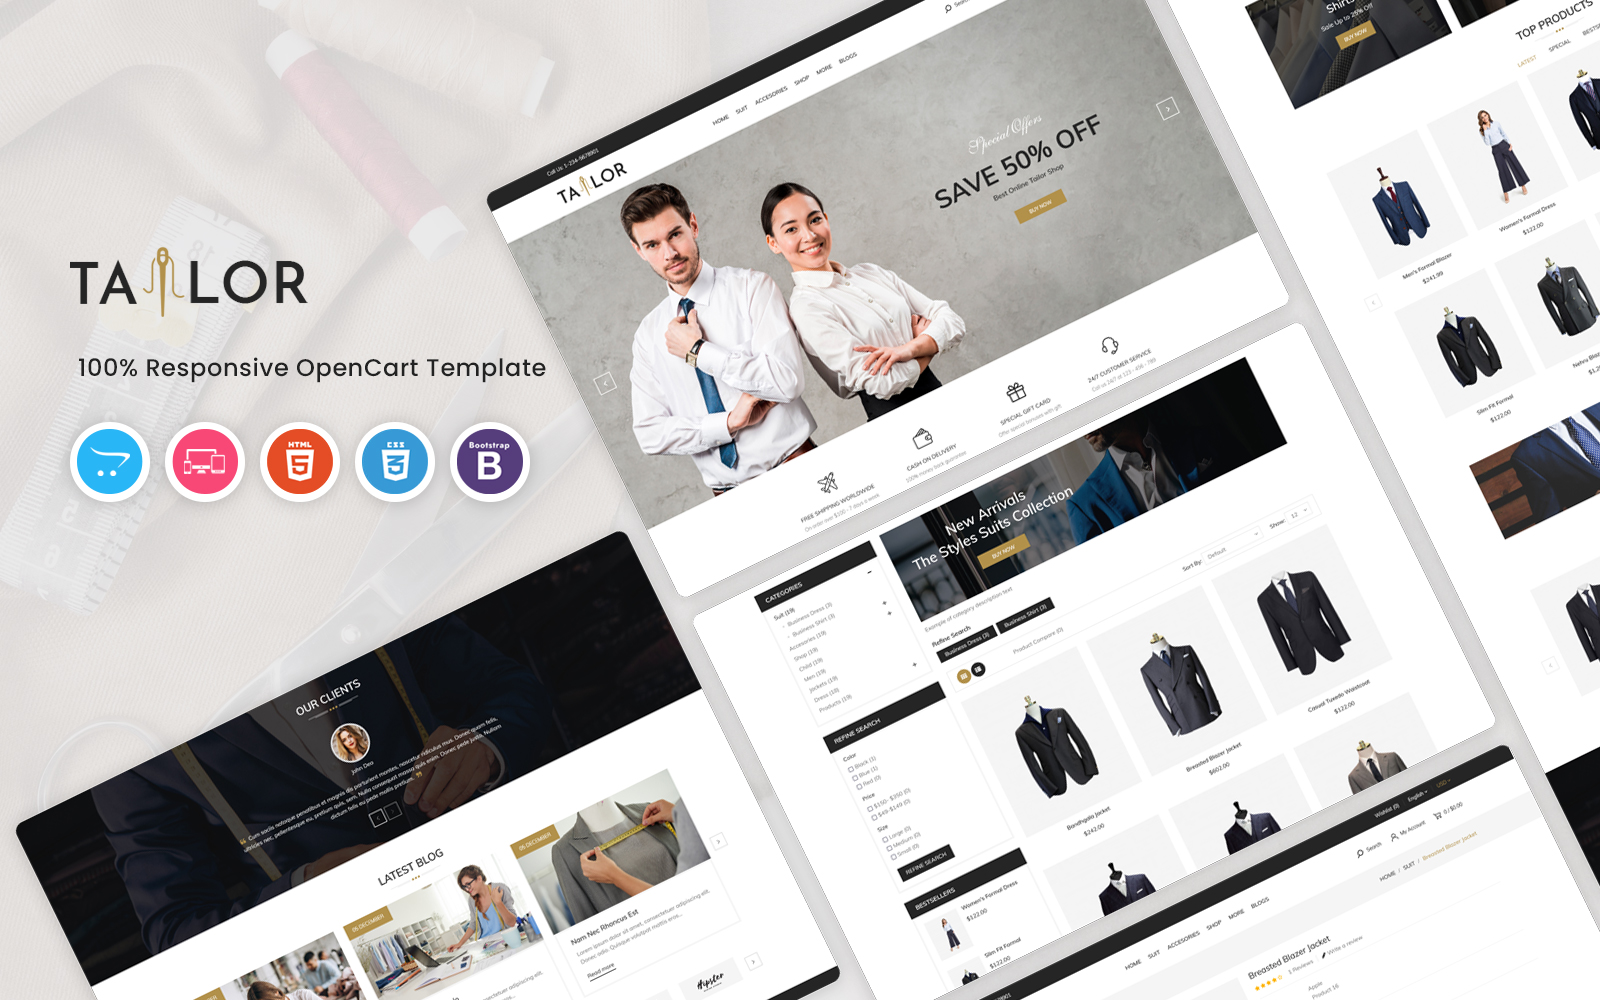 Tailor OpenCart Template